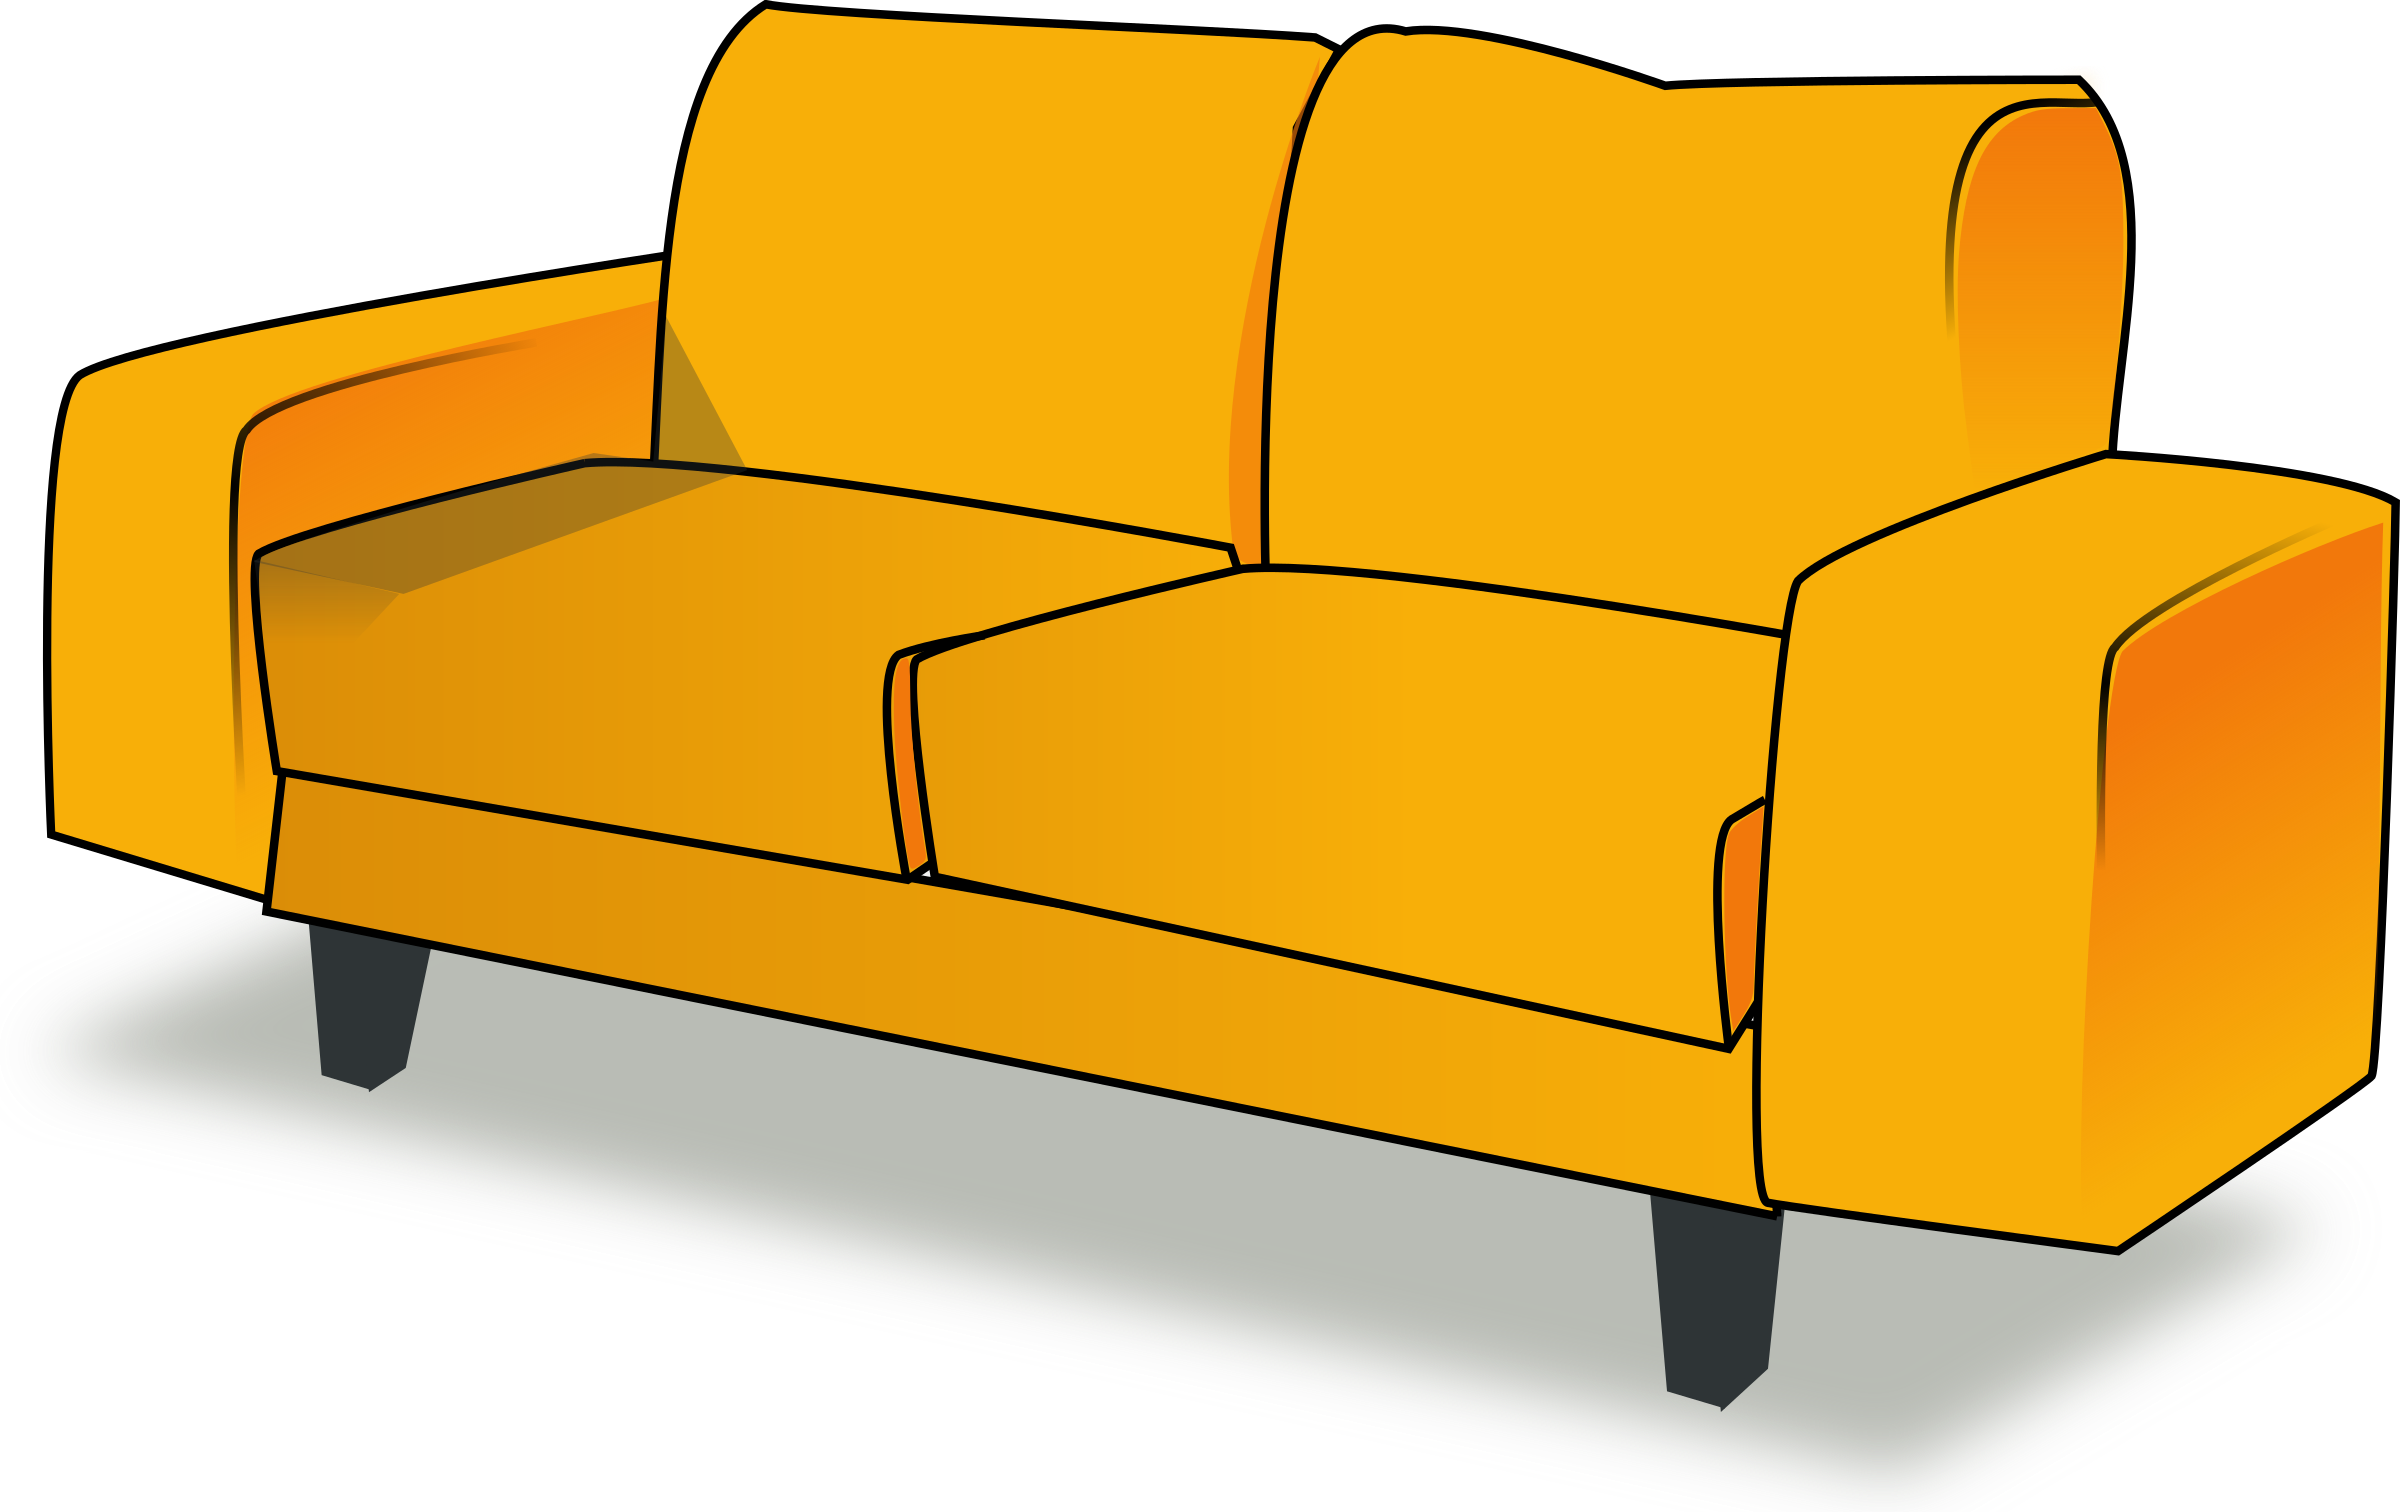 Couch clipart single person. Sofa tandem icons png